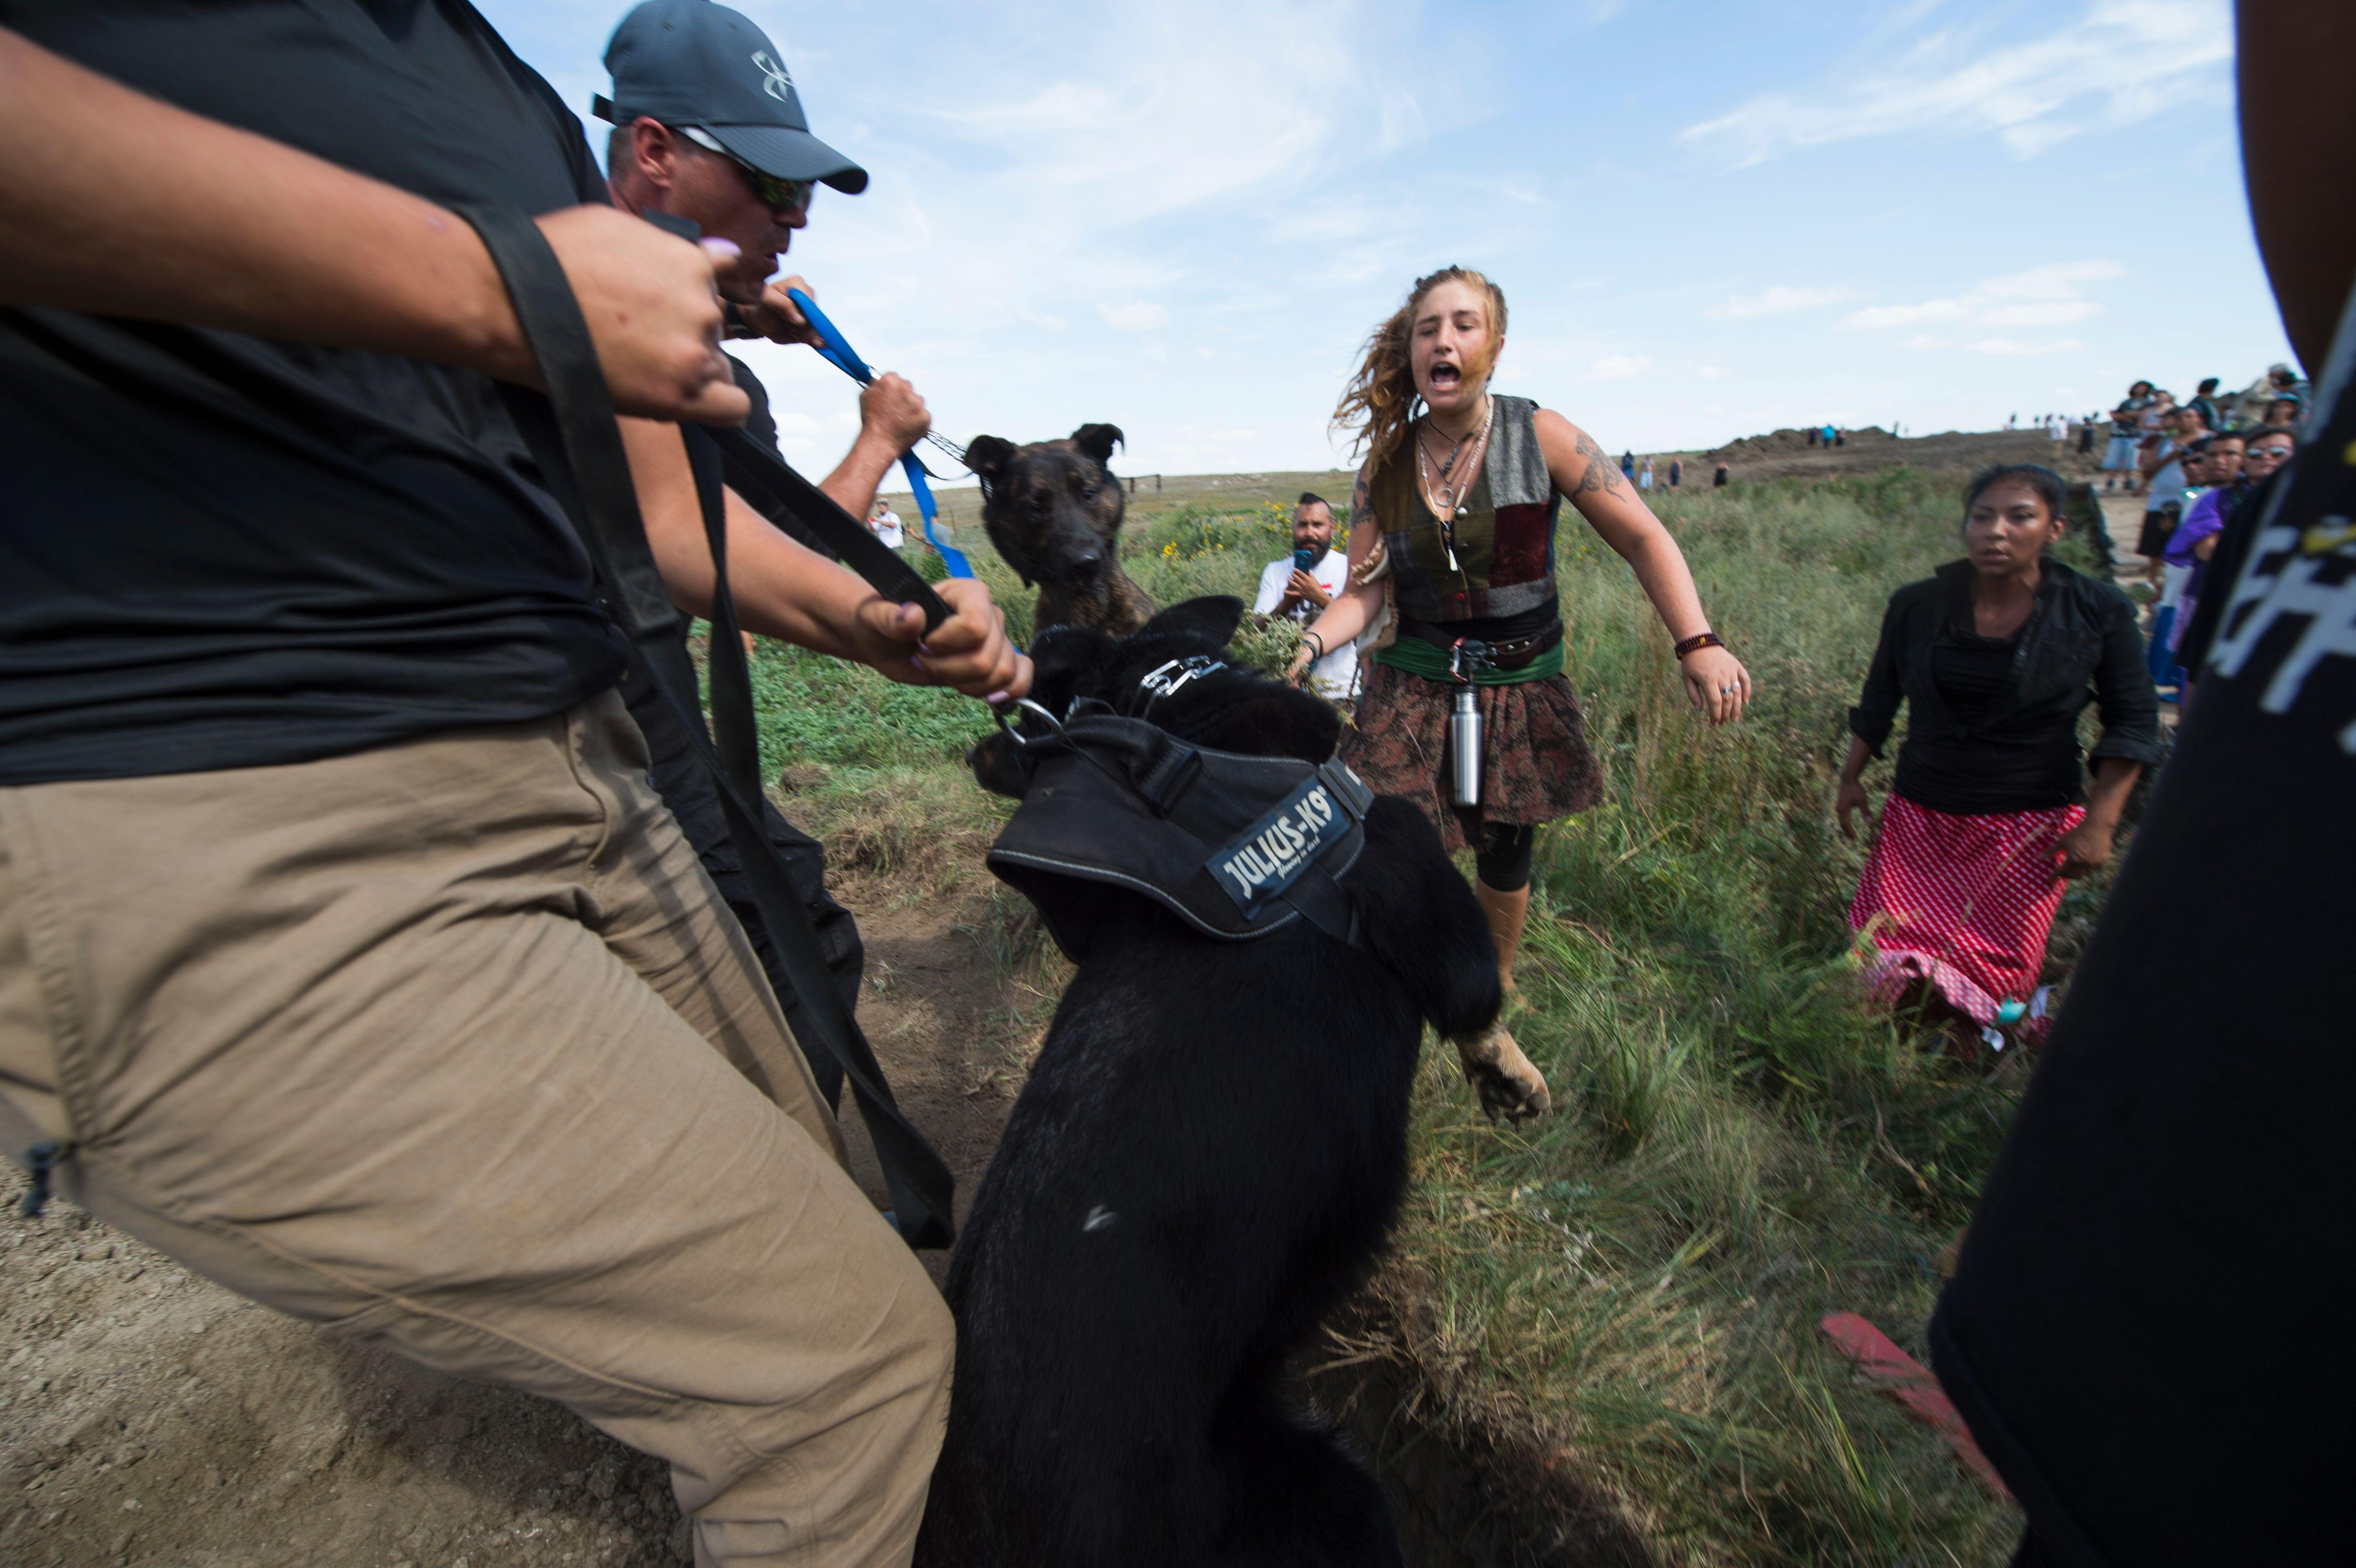 Guards accused of unleashing dogs, pepper-spraying oil pipeline protesters 231f060afa4d